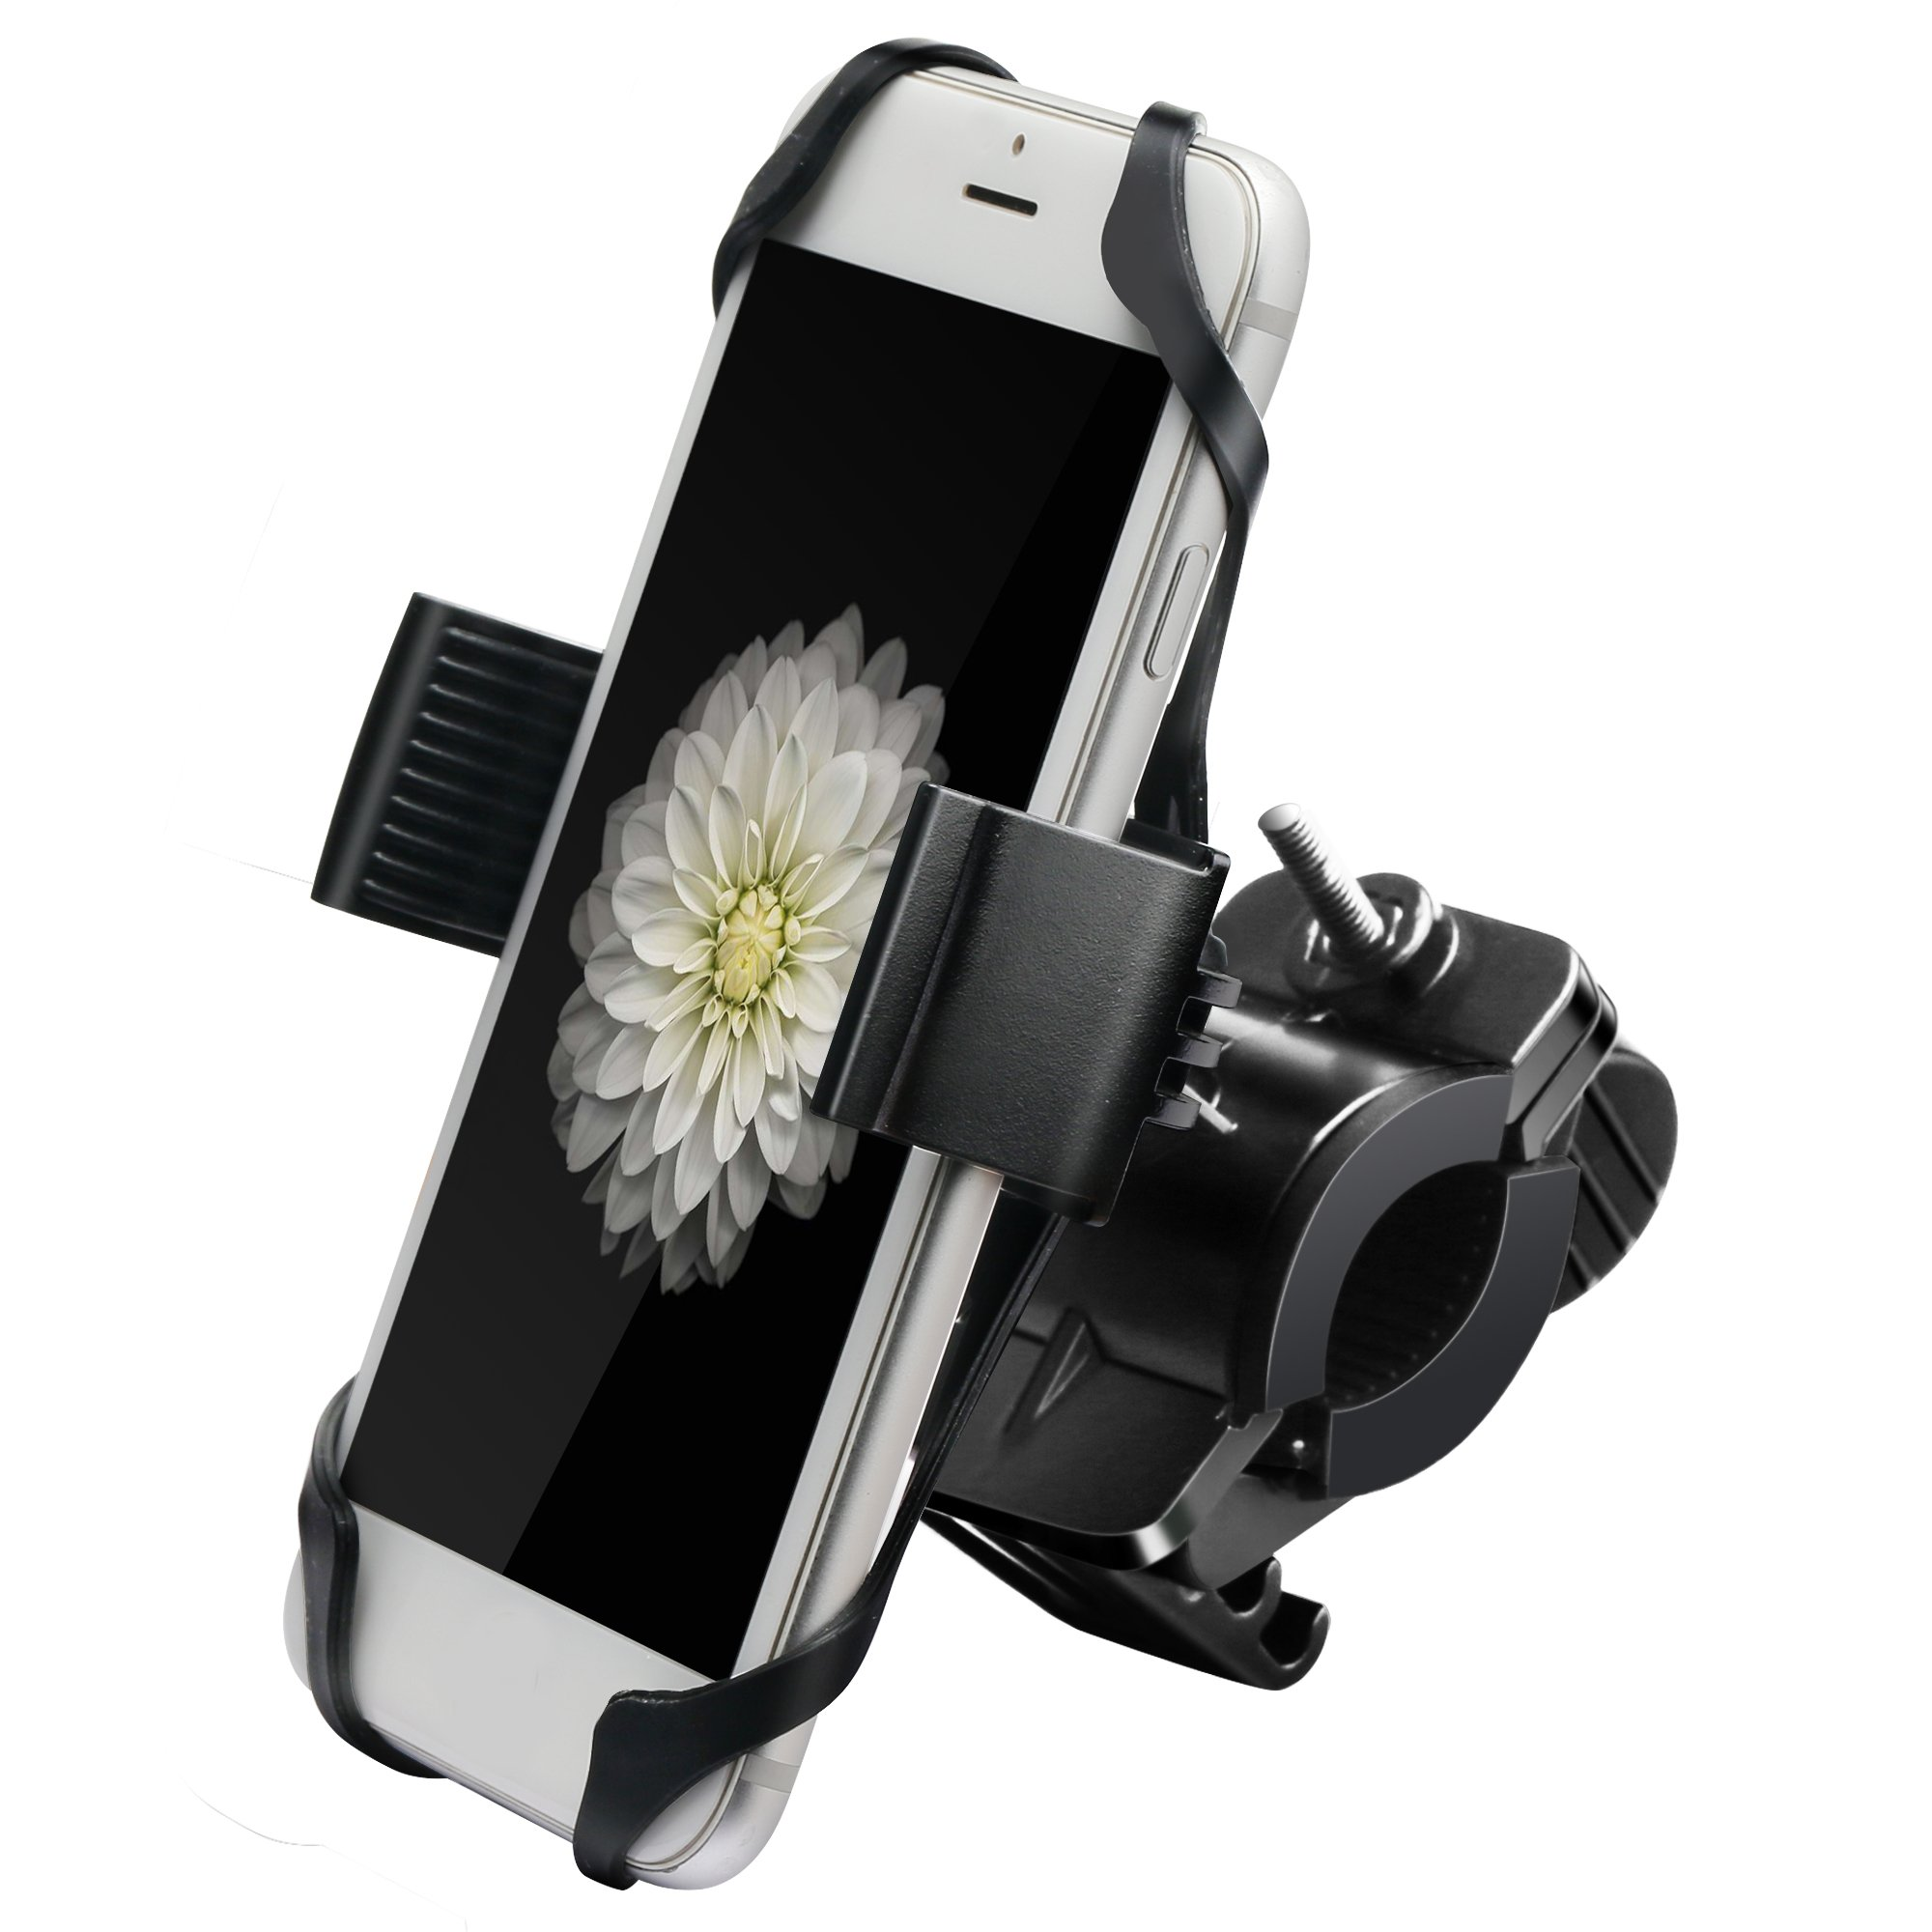 Ipow Metal Bike & Motorcycle Cell Phone Mount, with Unbreakable Metal Handlebar Holder For Bicycle, Motorbike, ATV. Fits iPhone, Samsung or Any Smartphone/GPS by IPOW